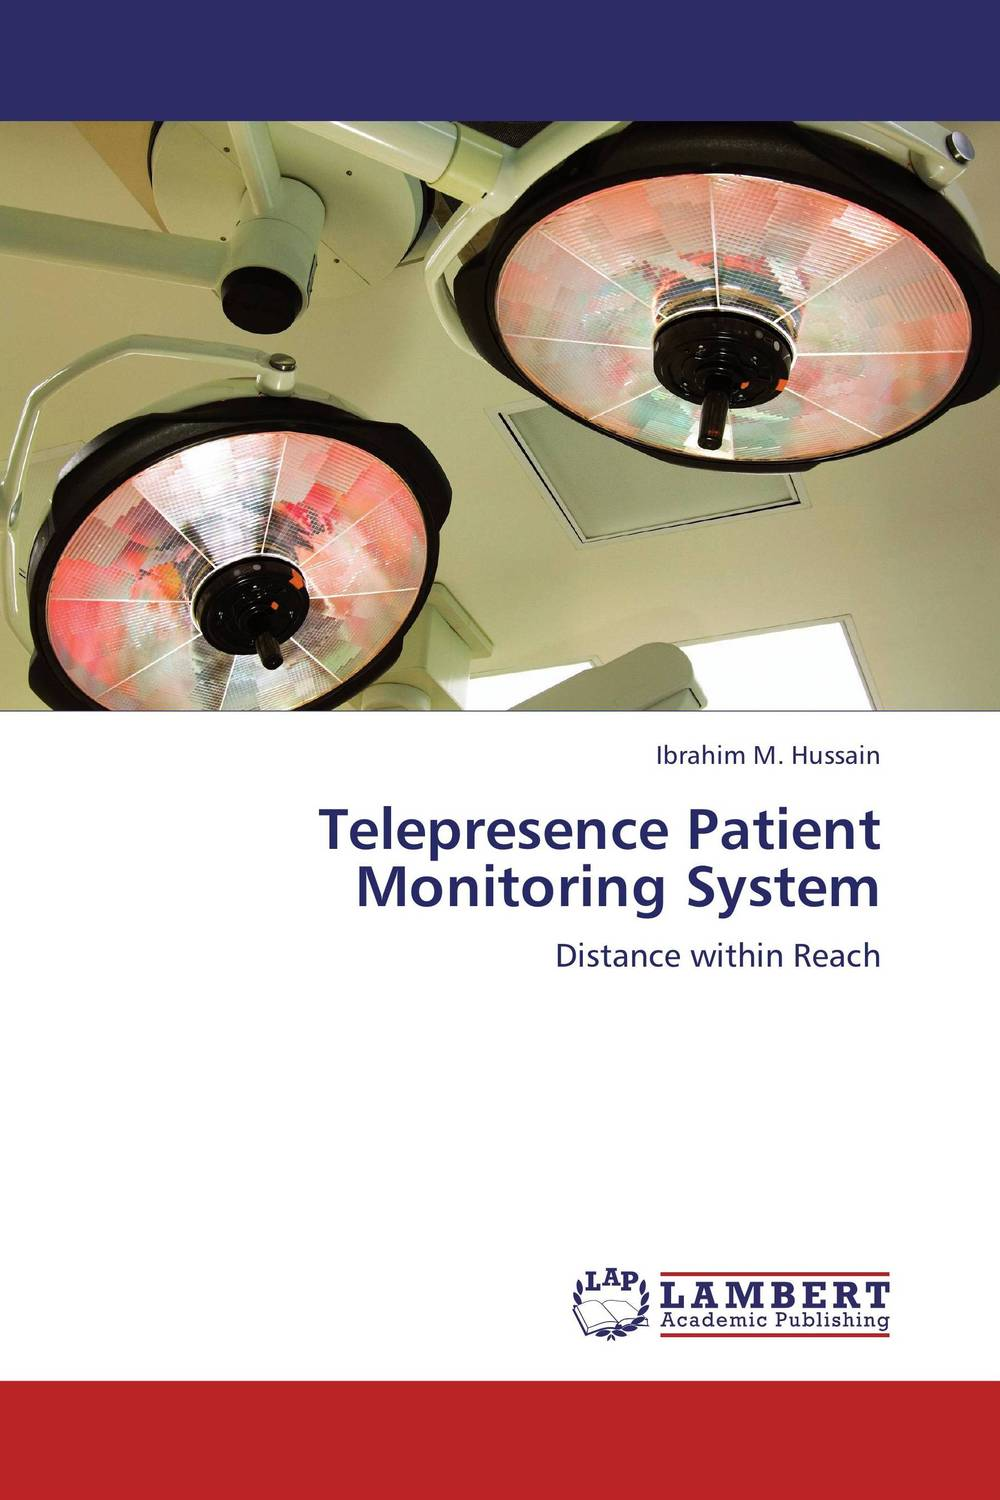 Telepresence Patient Monitoring System mohammed baqer m kamel and loay e george trusty patient monitoring system